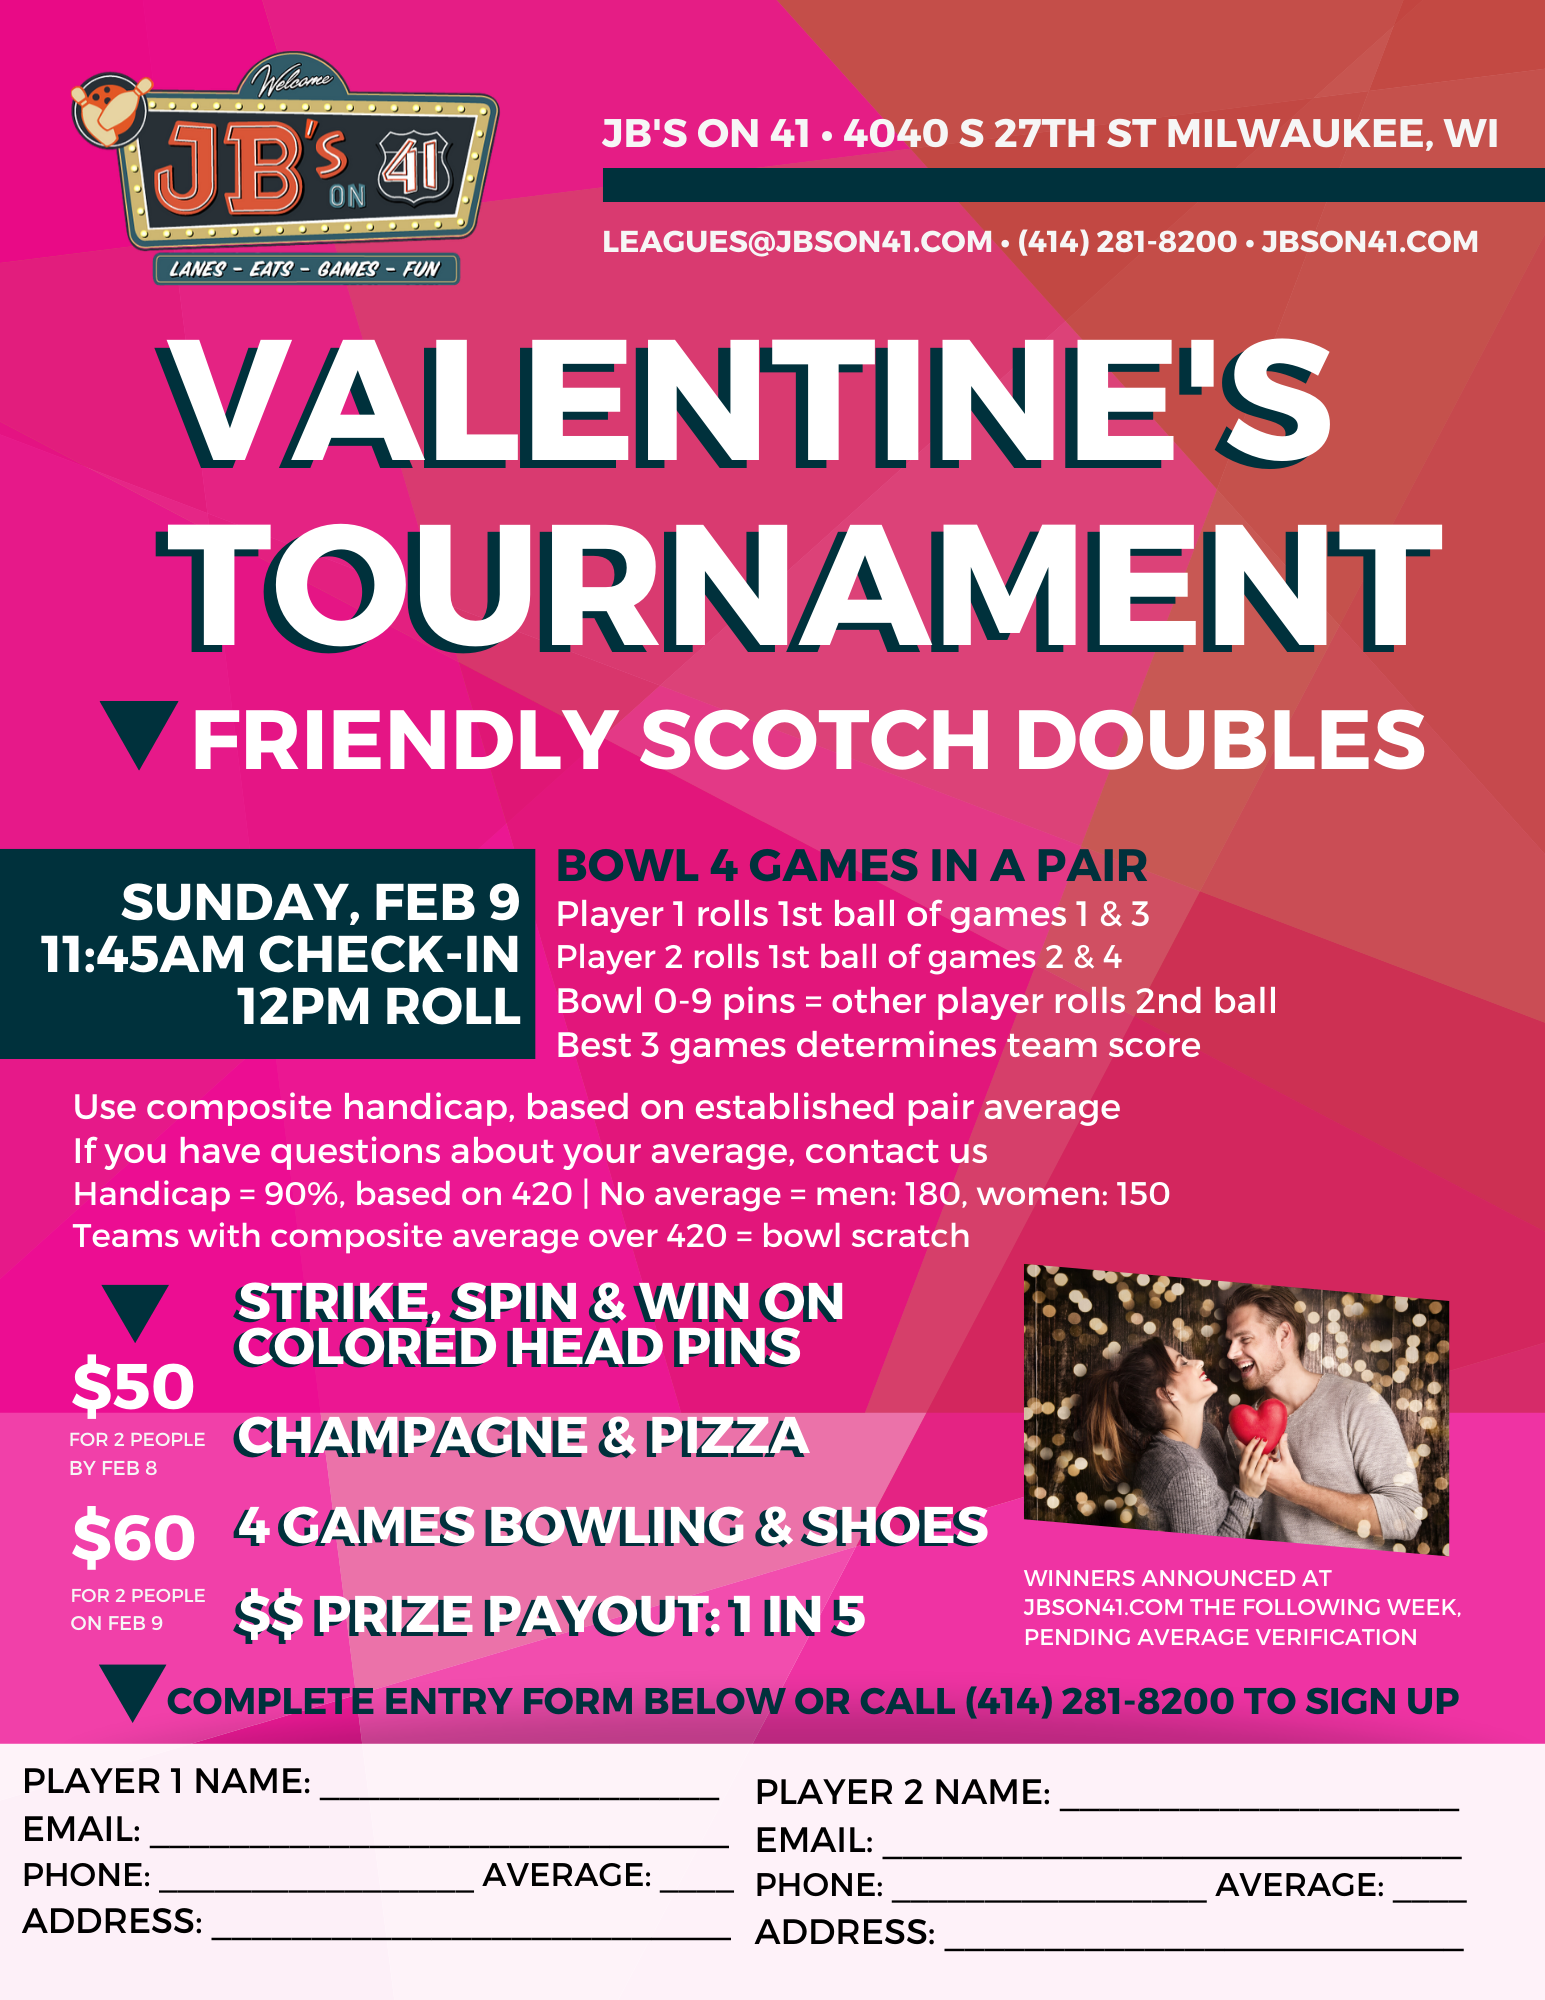 valentine's tournament | pink bowling tournament flyer | couples tournament | alternative valentine's day activities | february 9, 2020 | jb's on 41 | milwaukee, wi